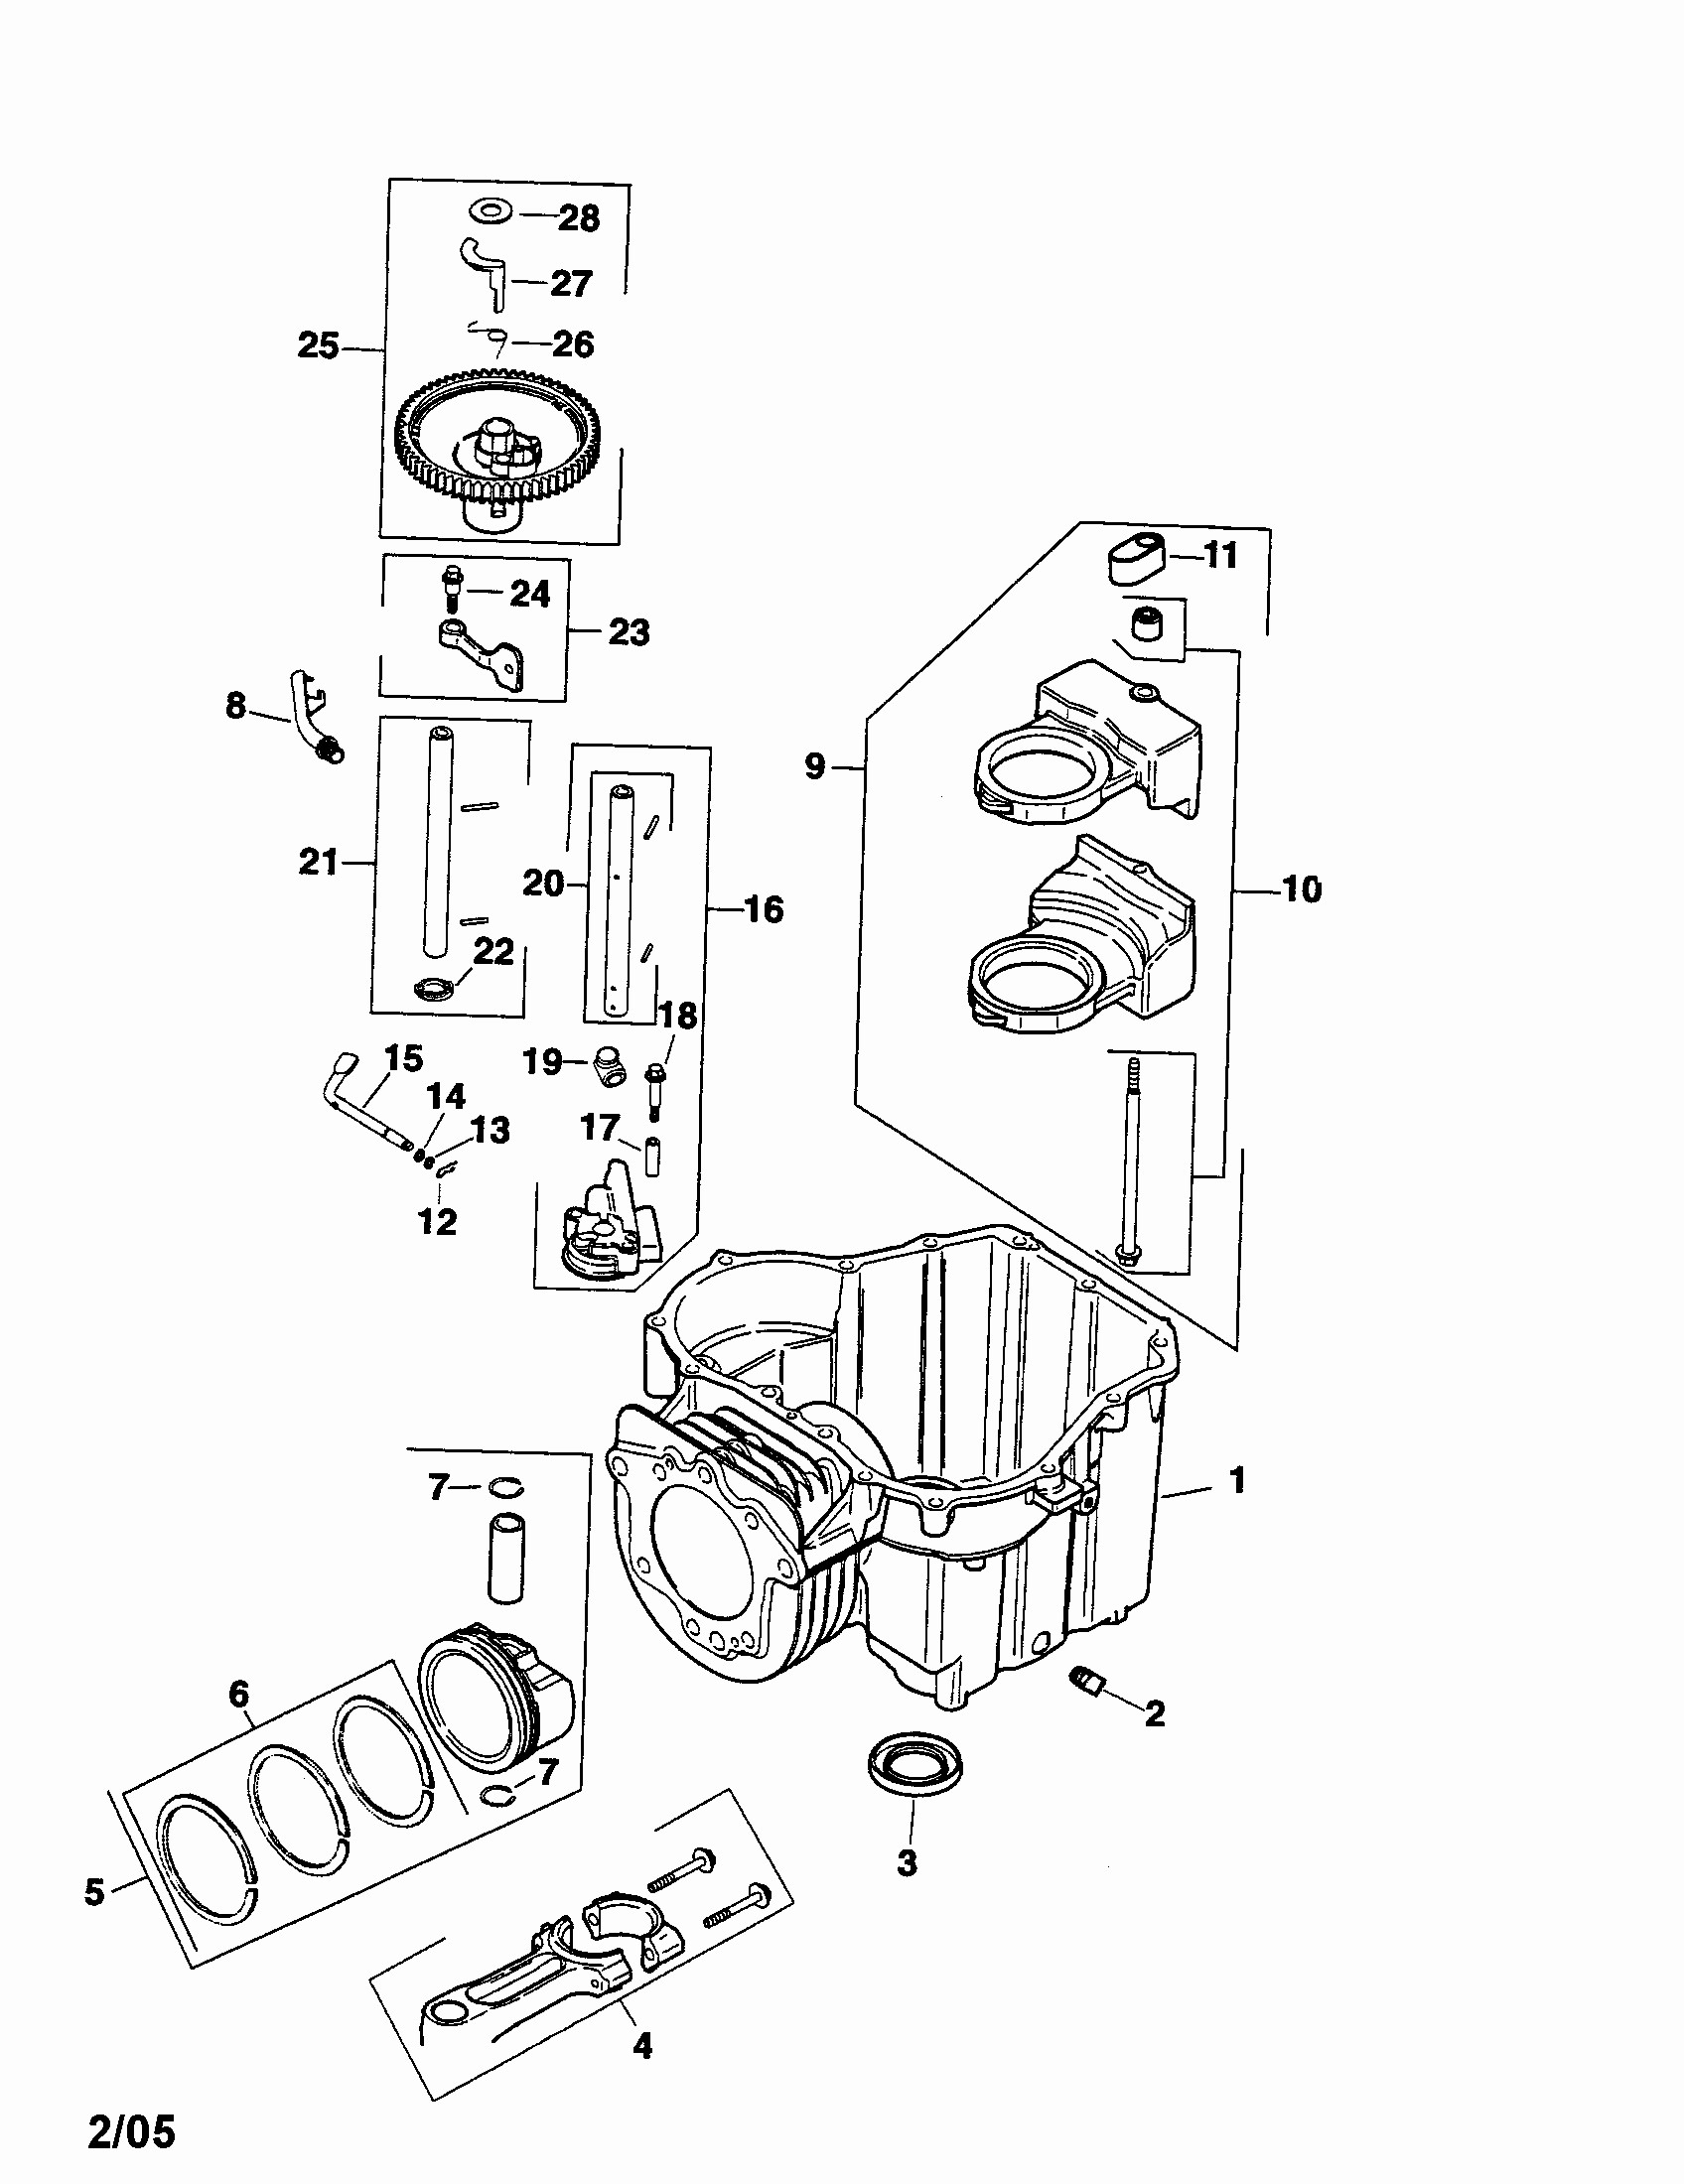 2003 chevy silverado head light wiring diagram